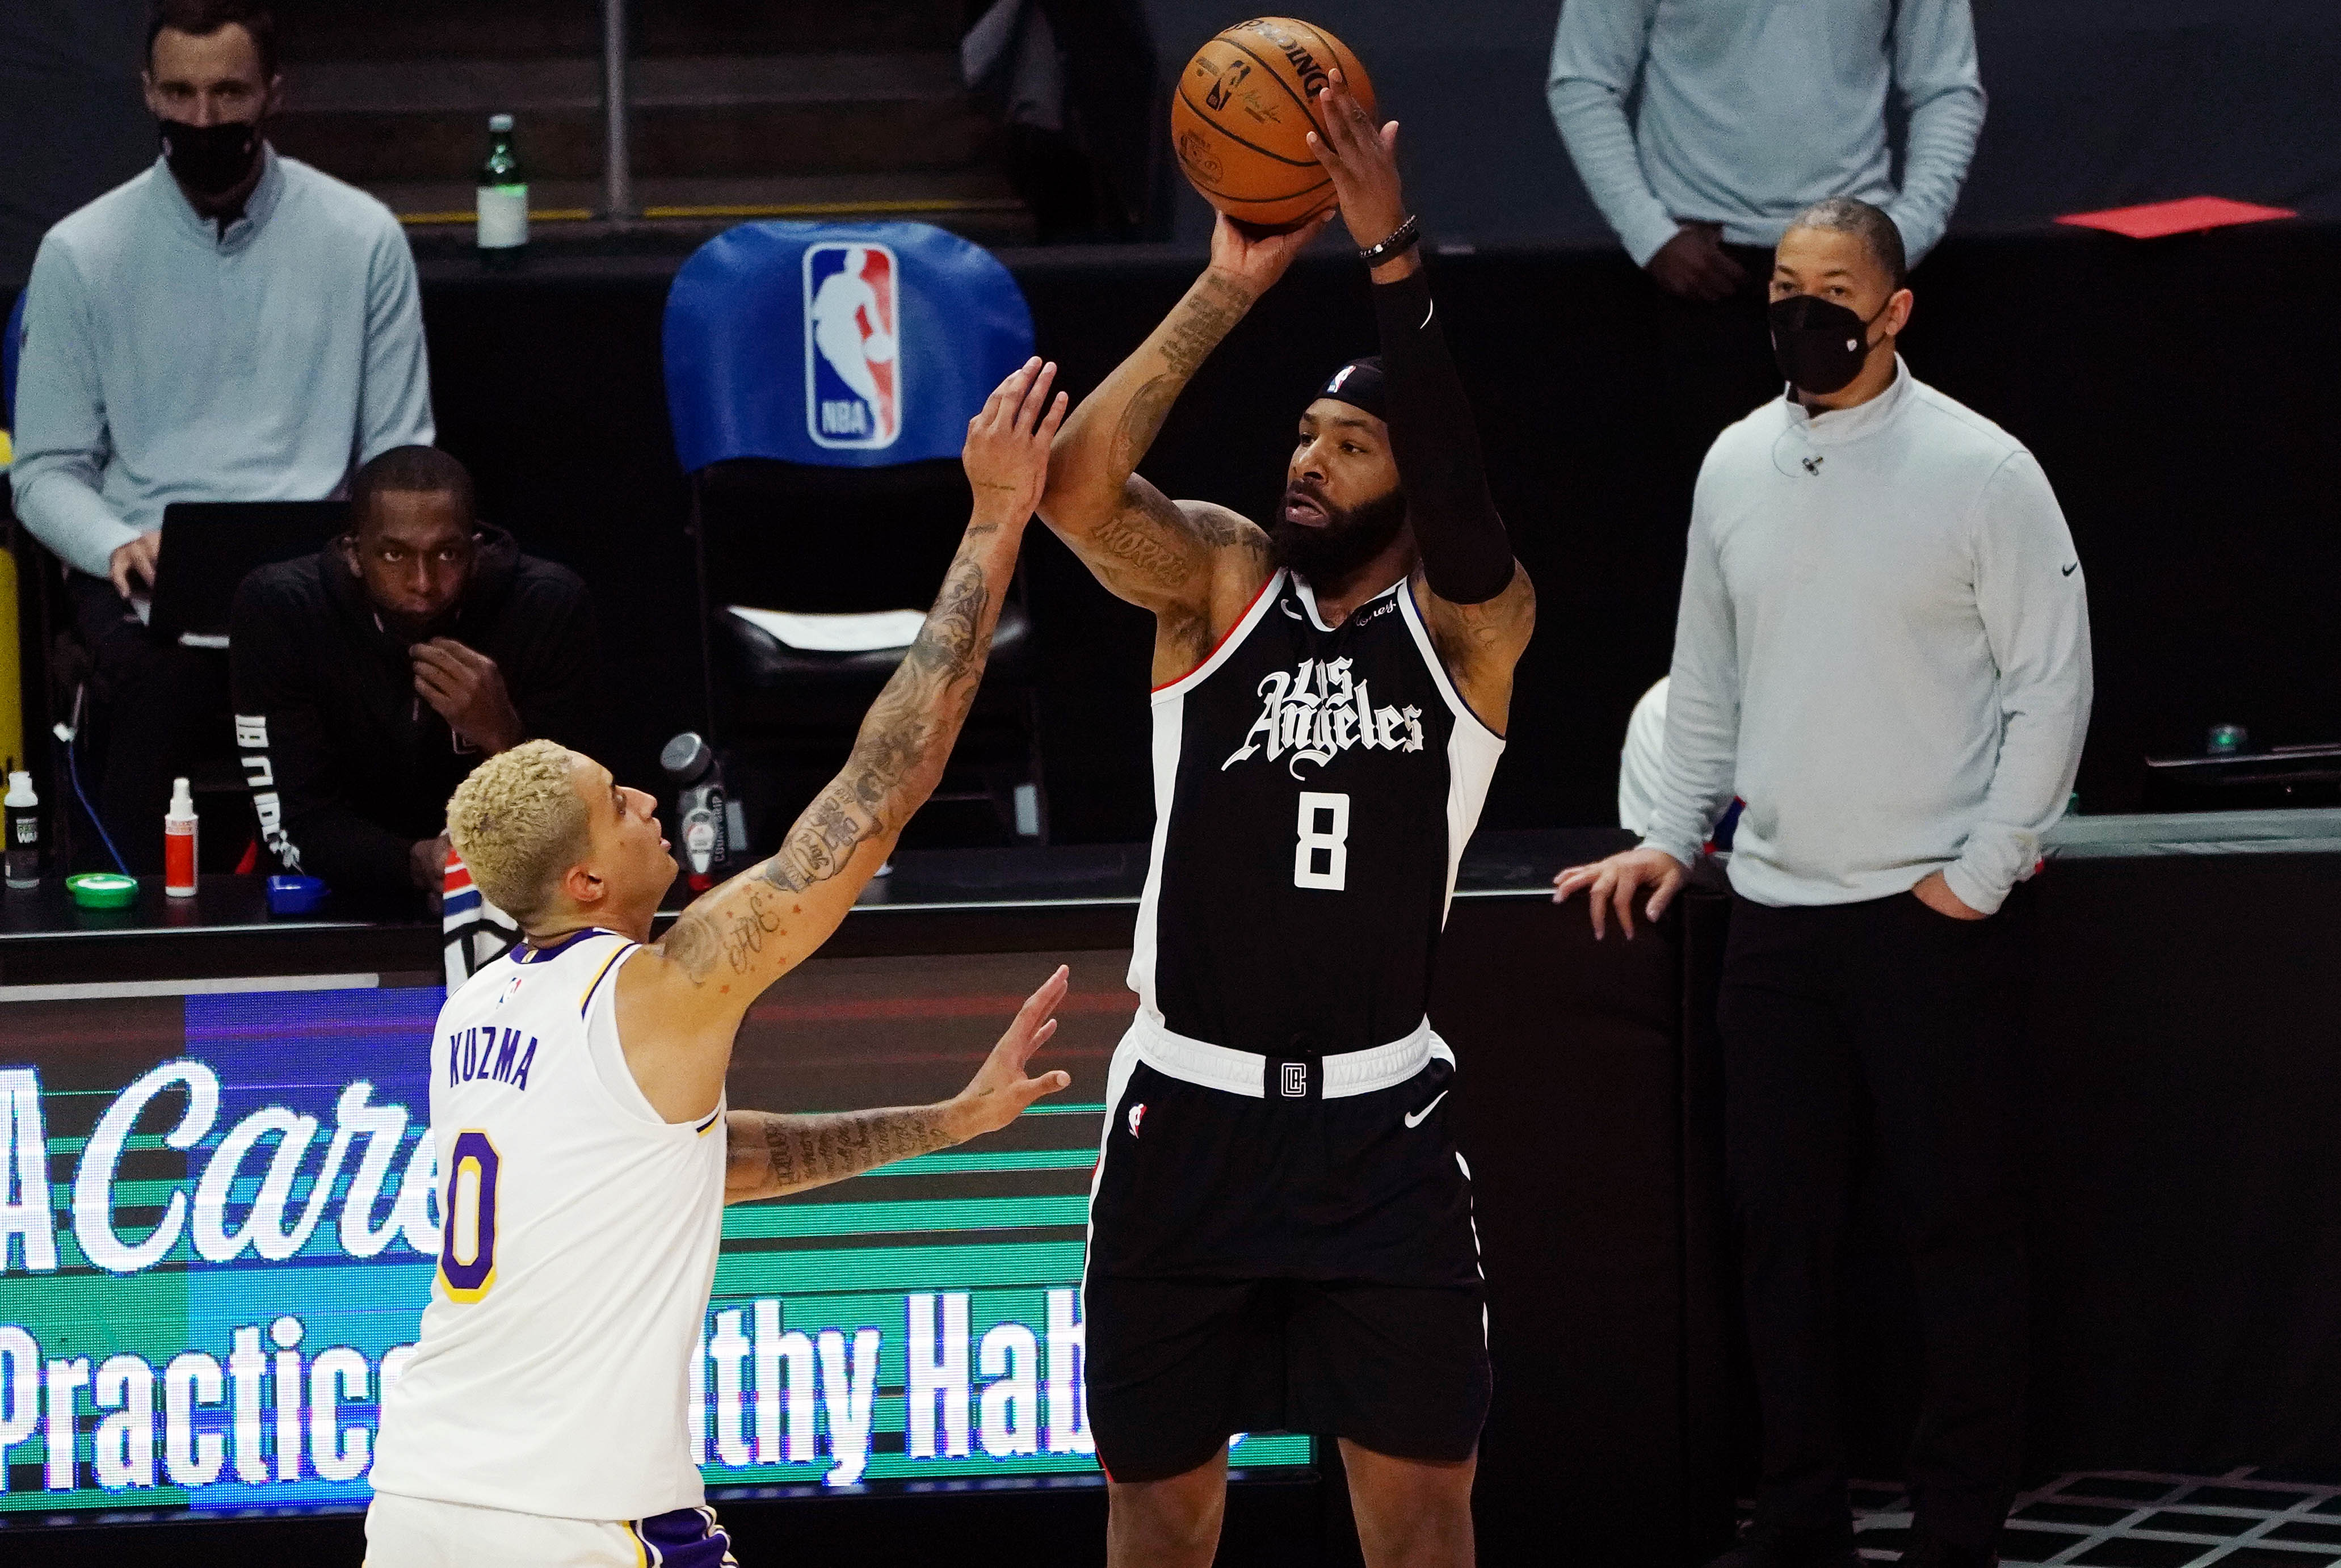 Apr 4, 2021; Los Angeles, California, USA; Los Angeles Clippers forward Marcus Morris Sr. (8) shoots against Los Angeles Lakers forward Kyle Kuzma (0) during the first half at Staples Center.